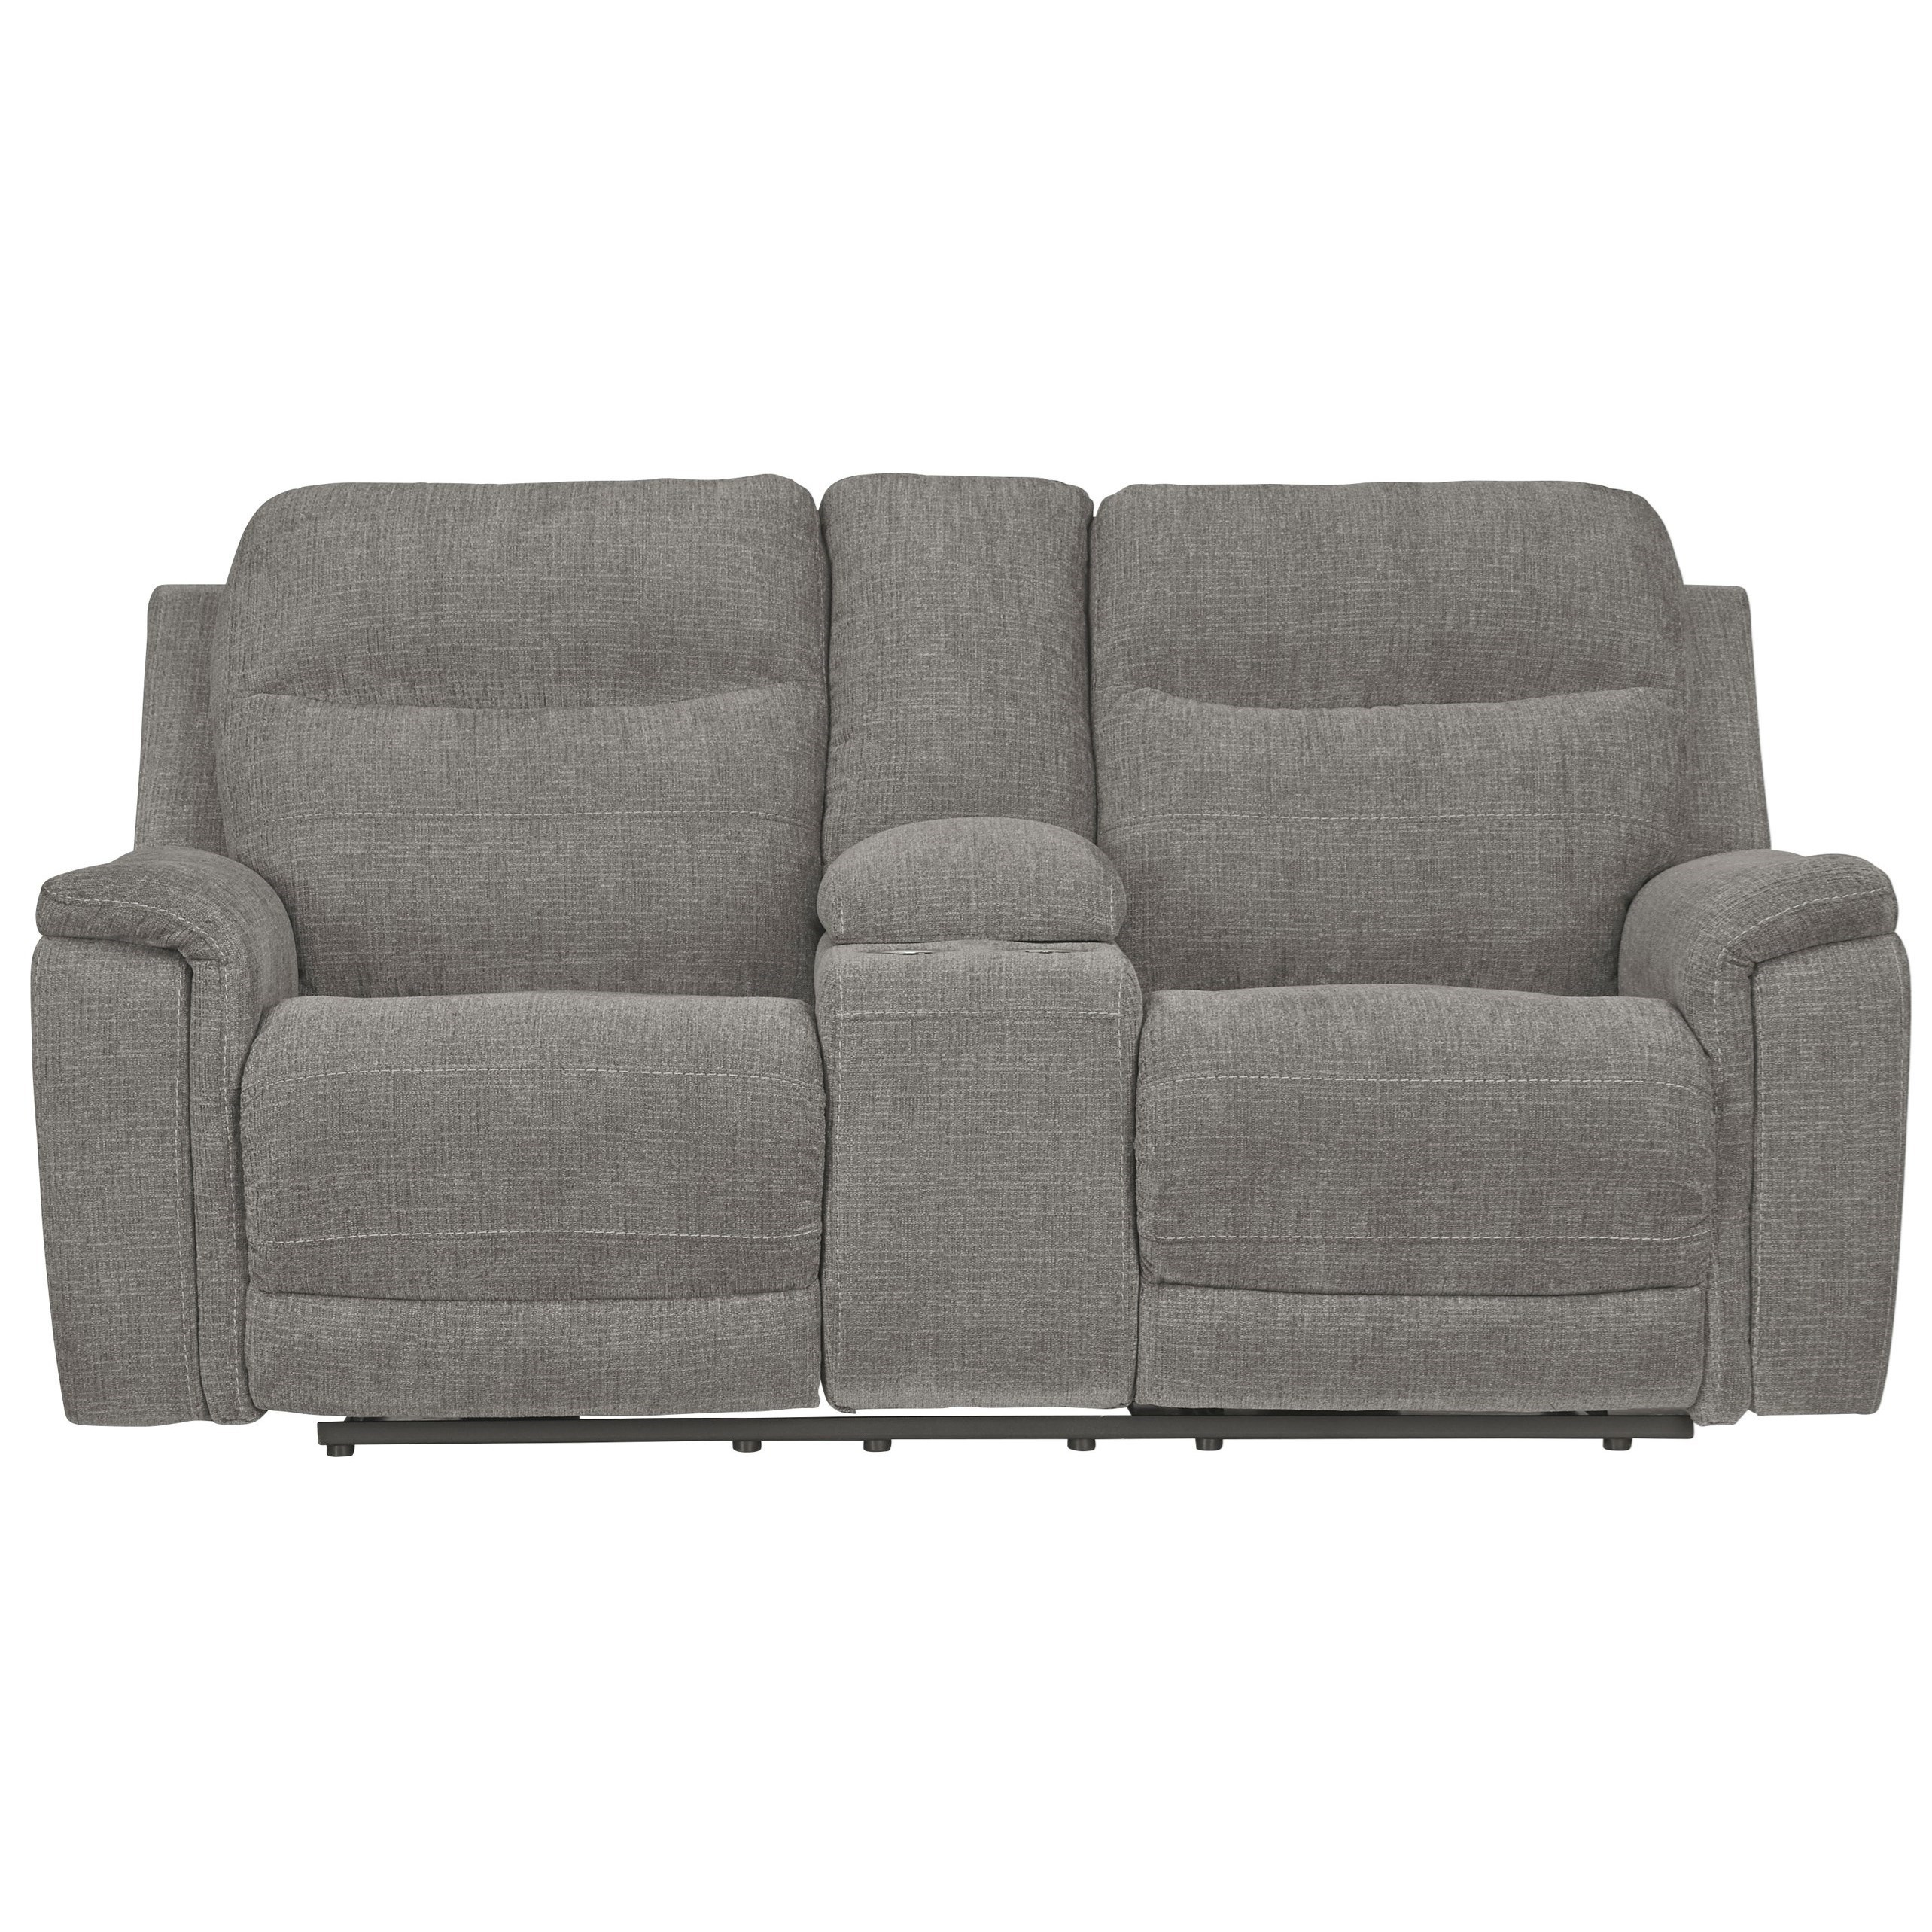 Picture of: Signature Design By Ashley Mouttrie Contemporary Power Reclining Loveseat With Console Adjustable Headrests Royal Furniture Reclining Loveseats